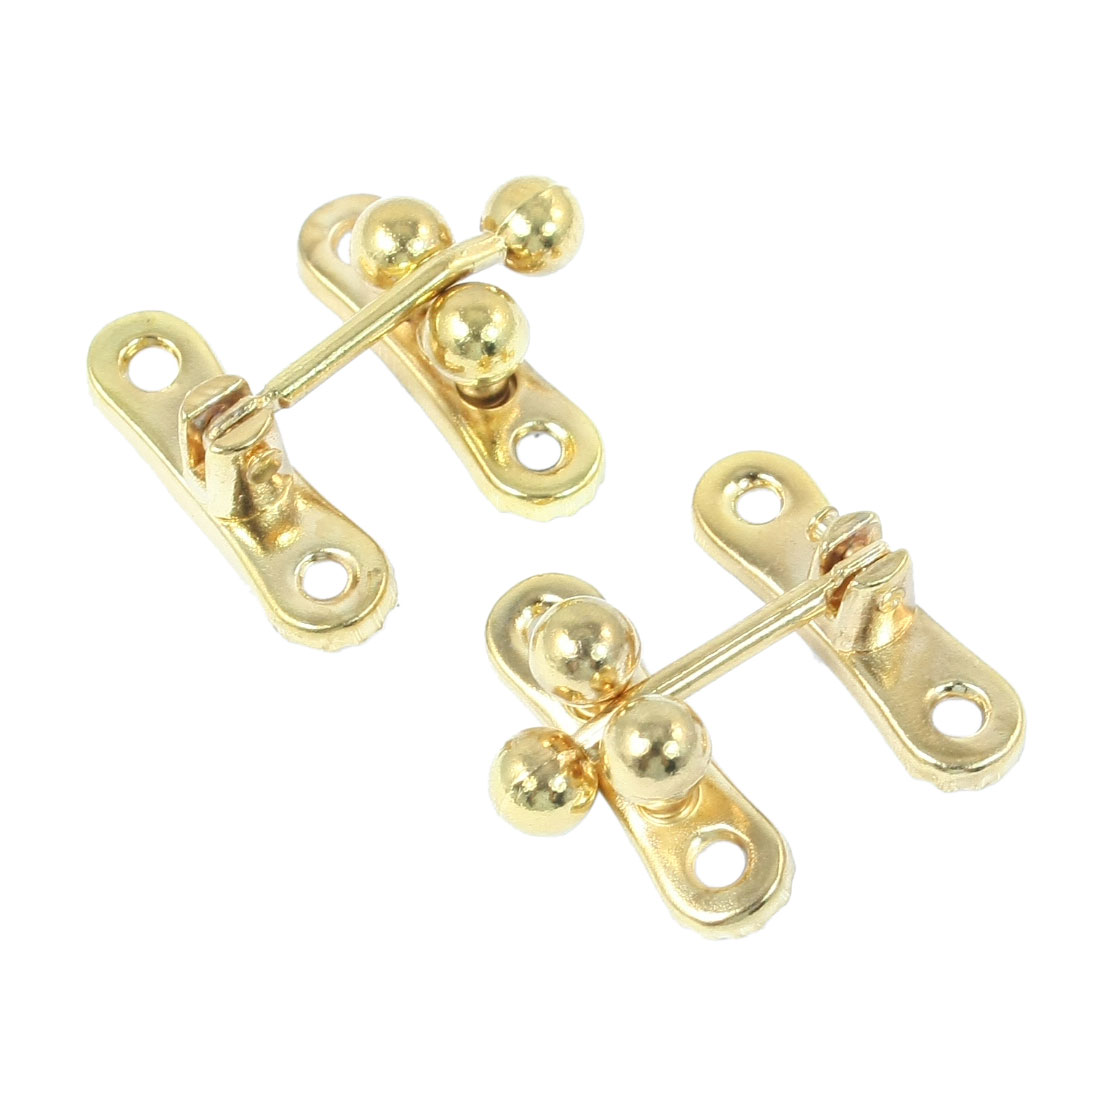 Hardware Metal Locking Hasp Wooden Gift Box Buckle Gold Tone 2pcs